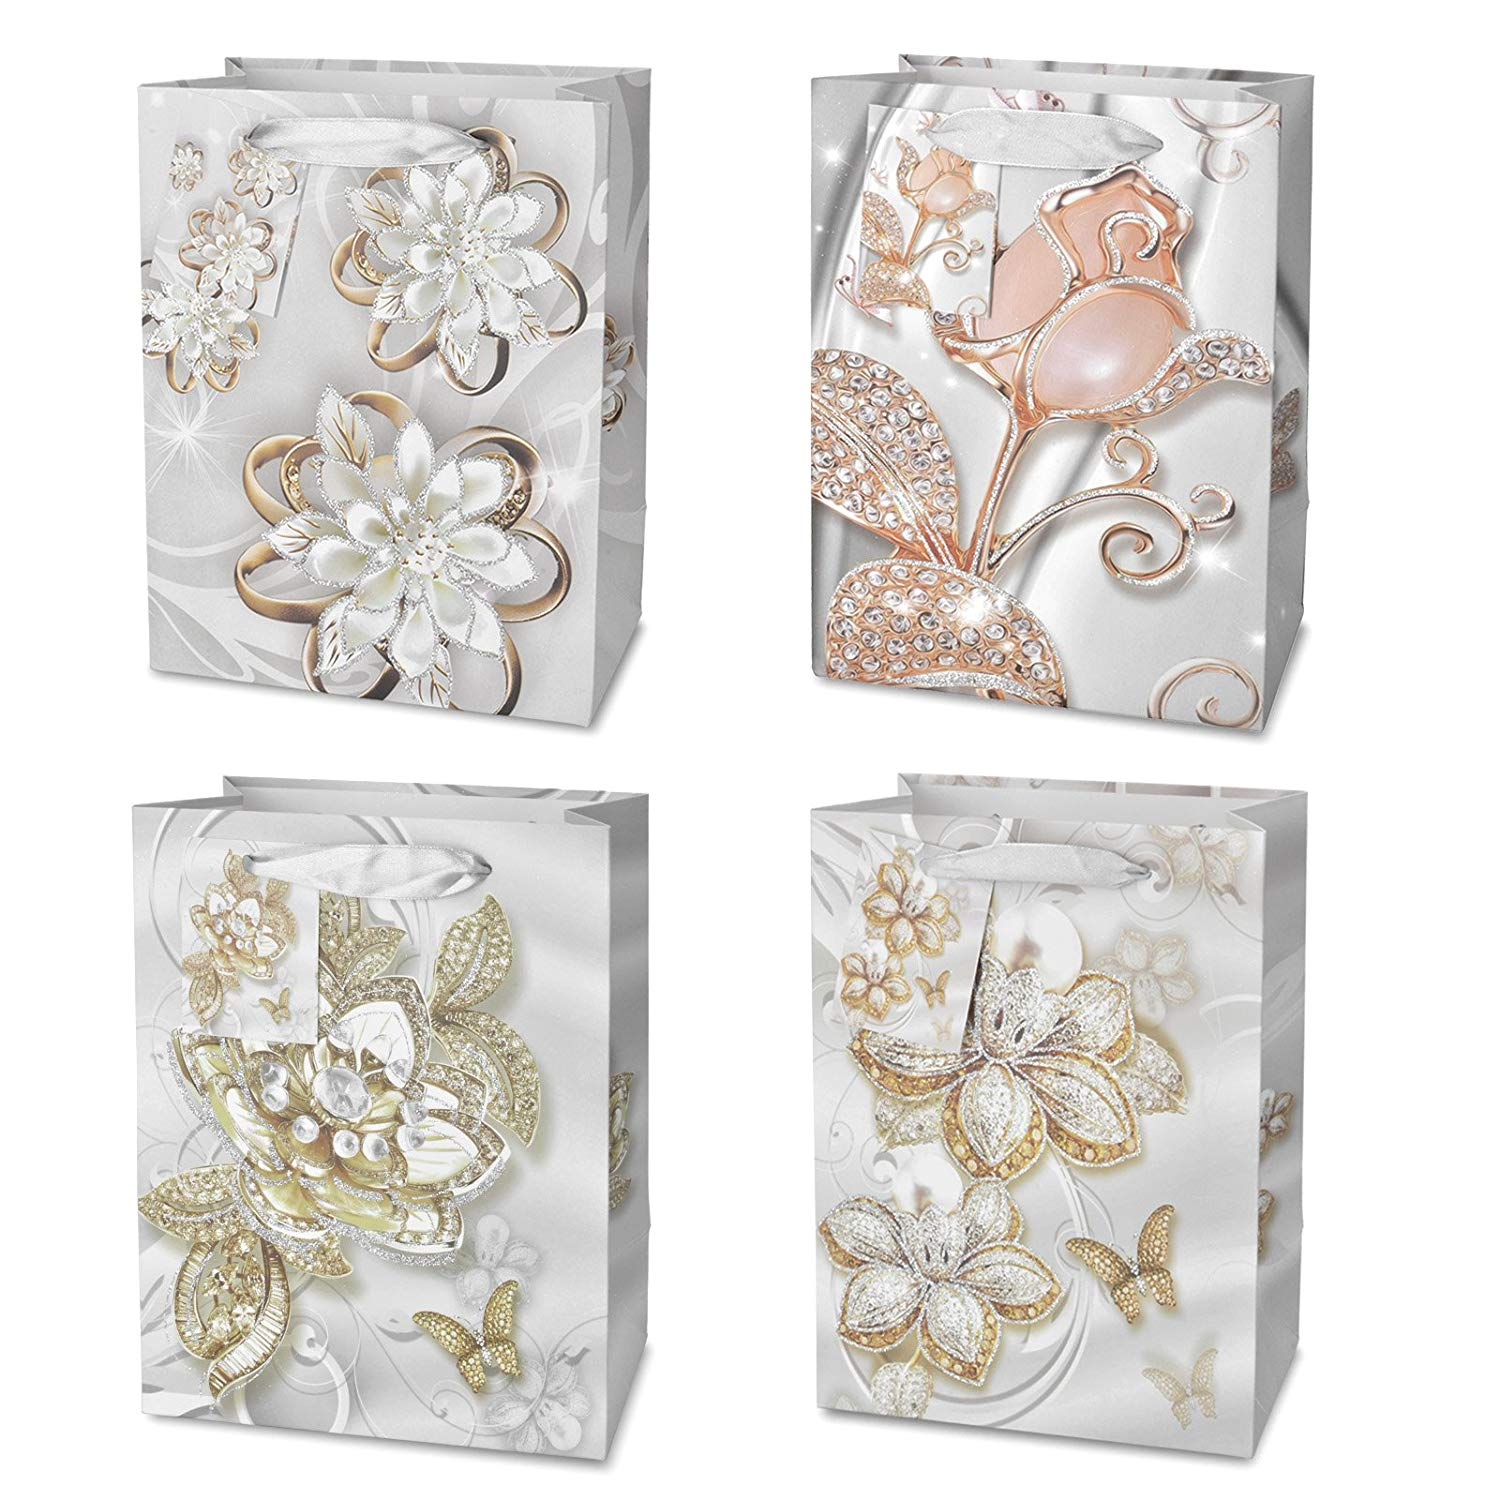 Wedding Party Gift Bags Bulk Glitter Rose Craft Bags with Handles for Bridal Birthday Gifts 4 Styles